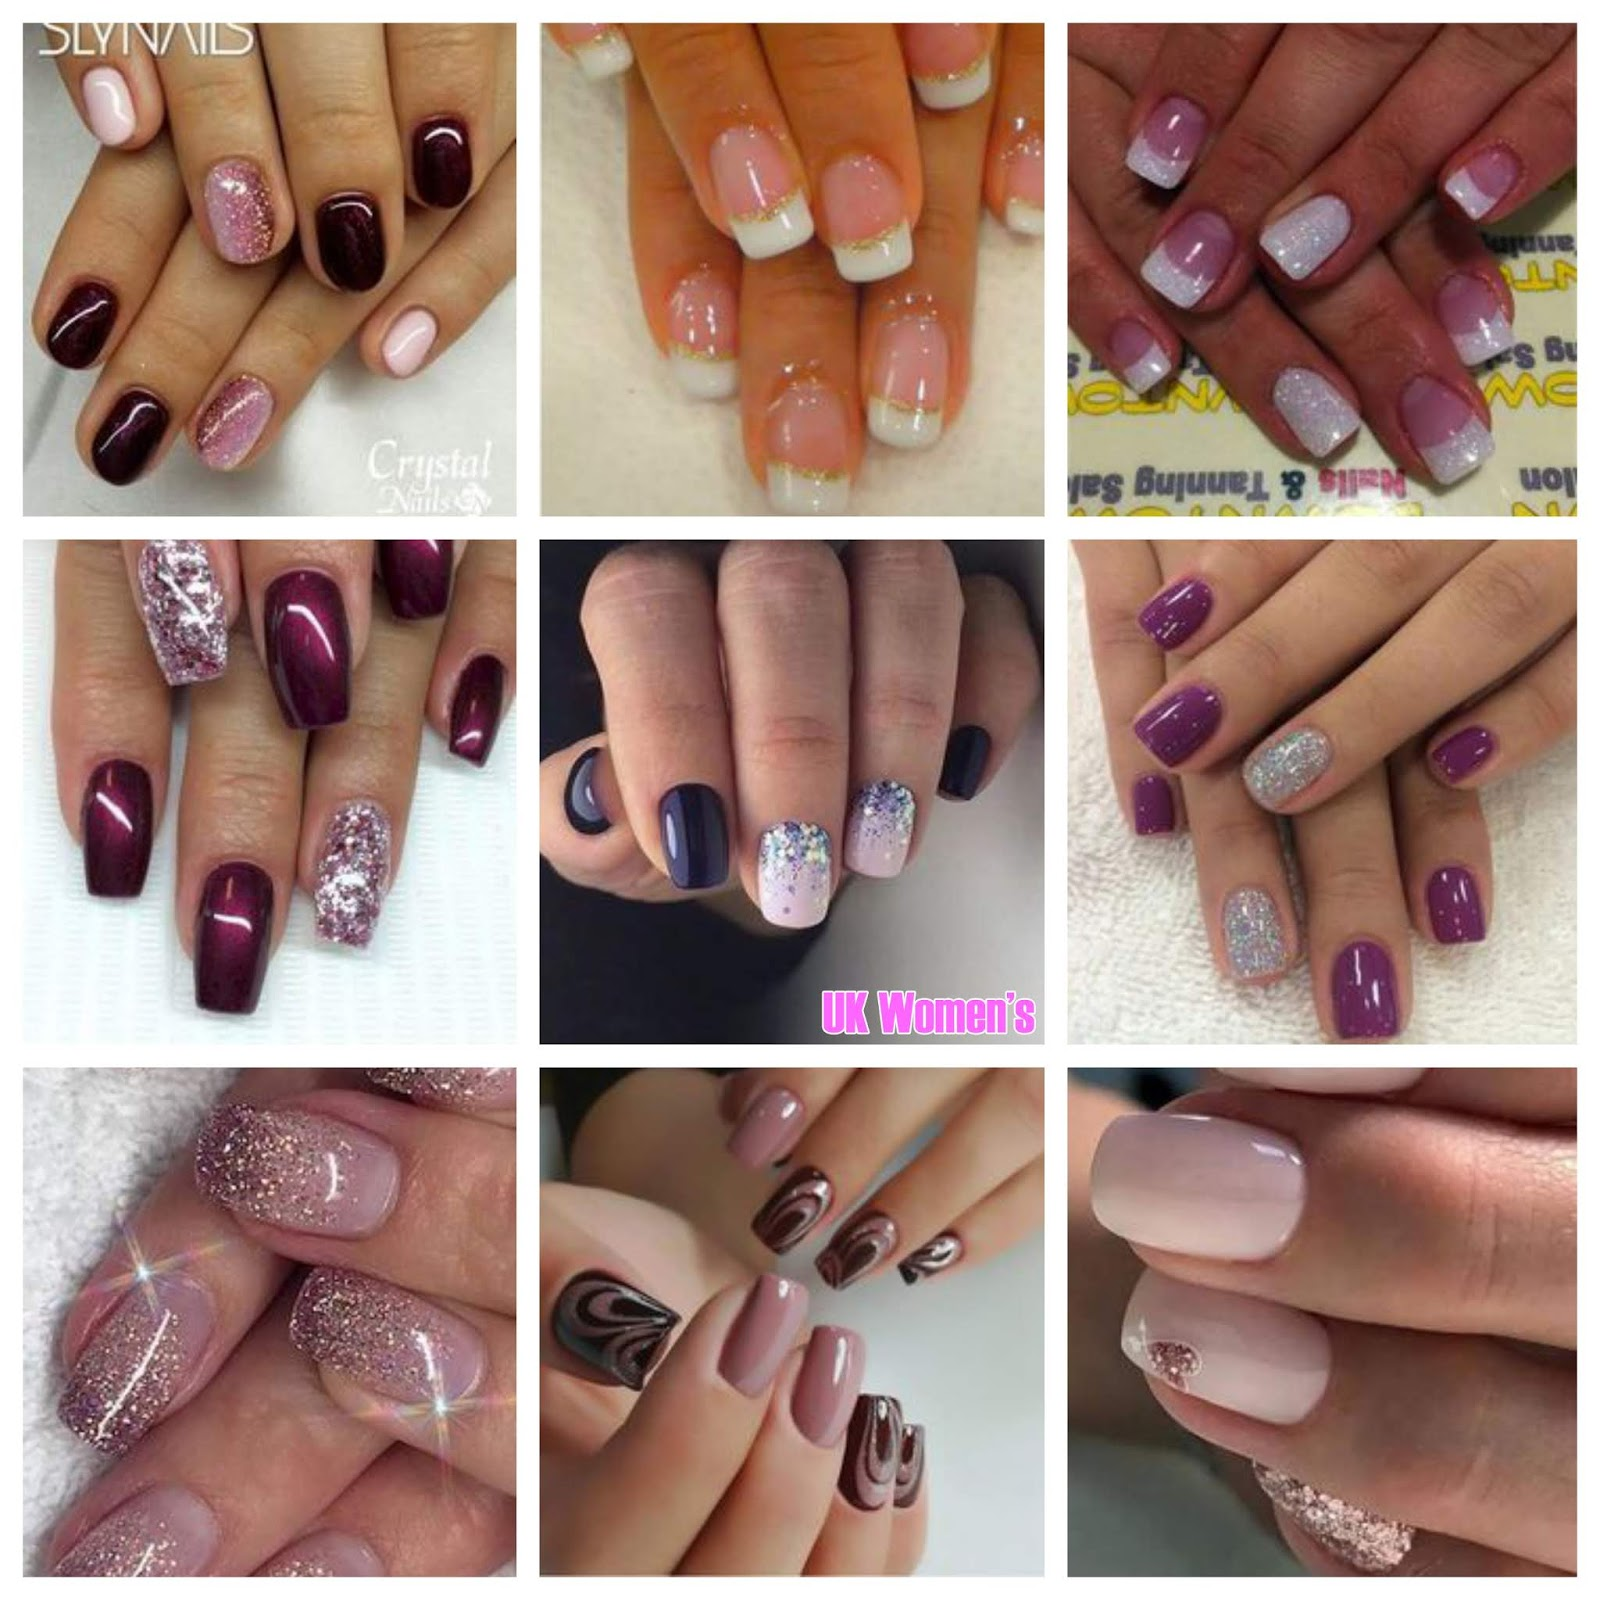 Short-Nails-Art-Designs-To-Try-3-1 Newest Short Nails Art Designs To Try In 2020